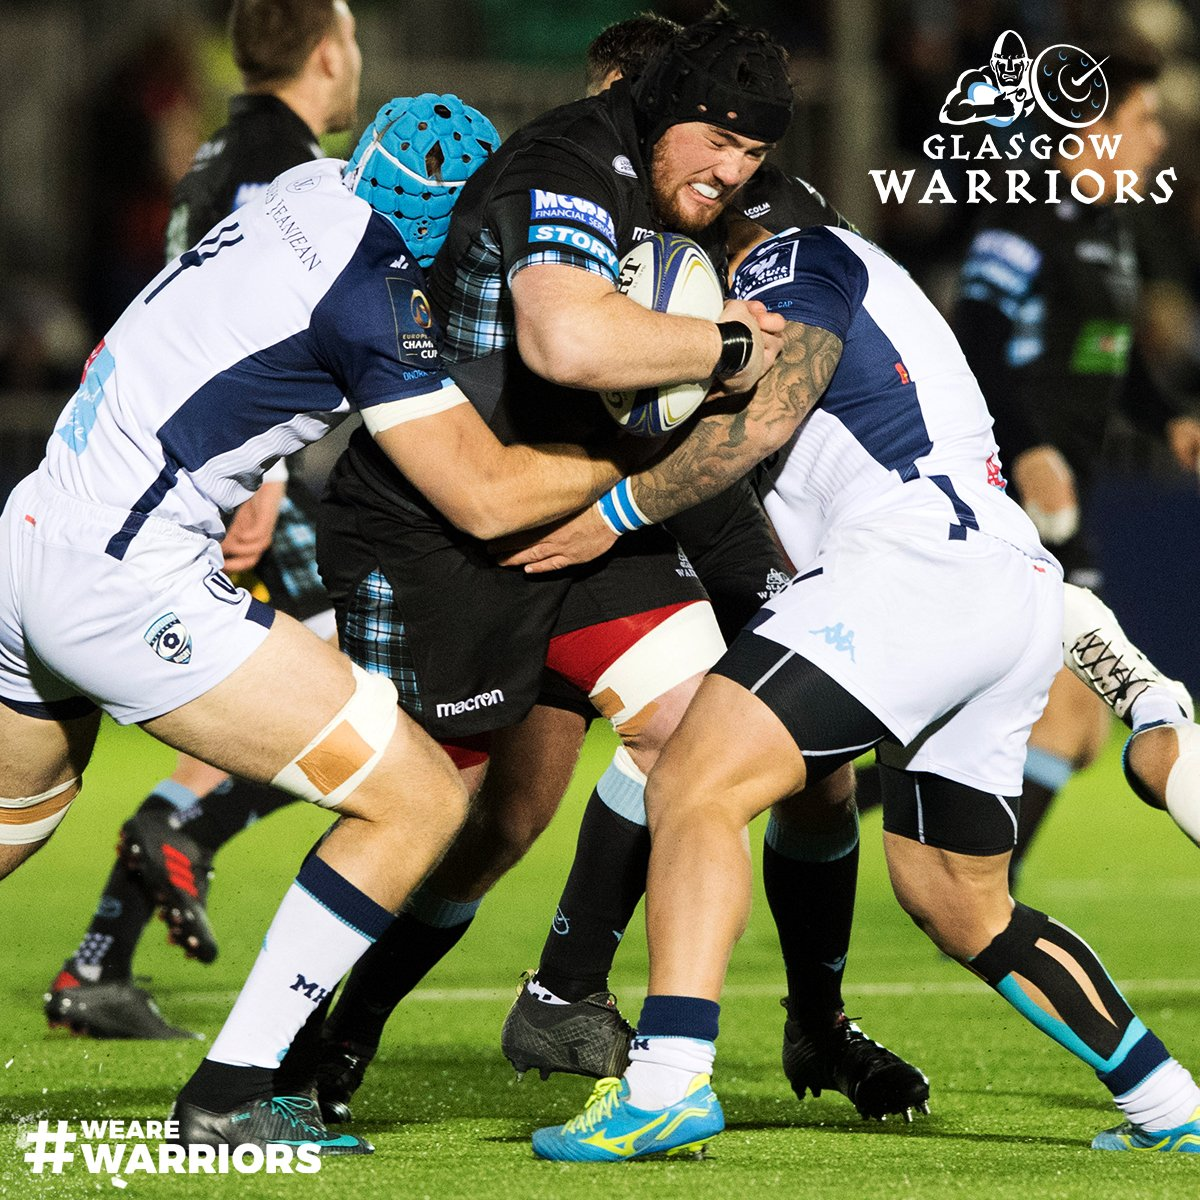 GlasgowWarriors